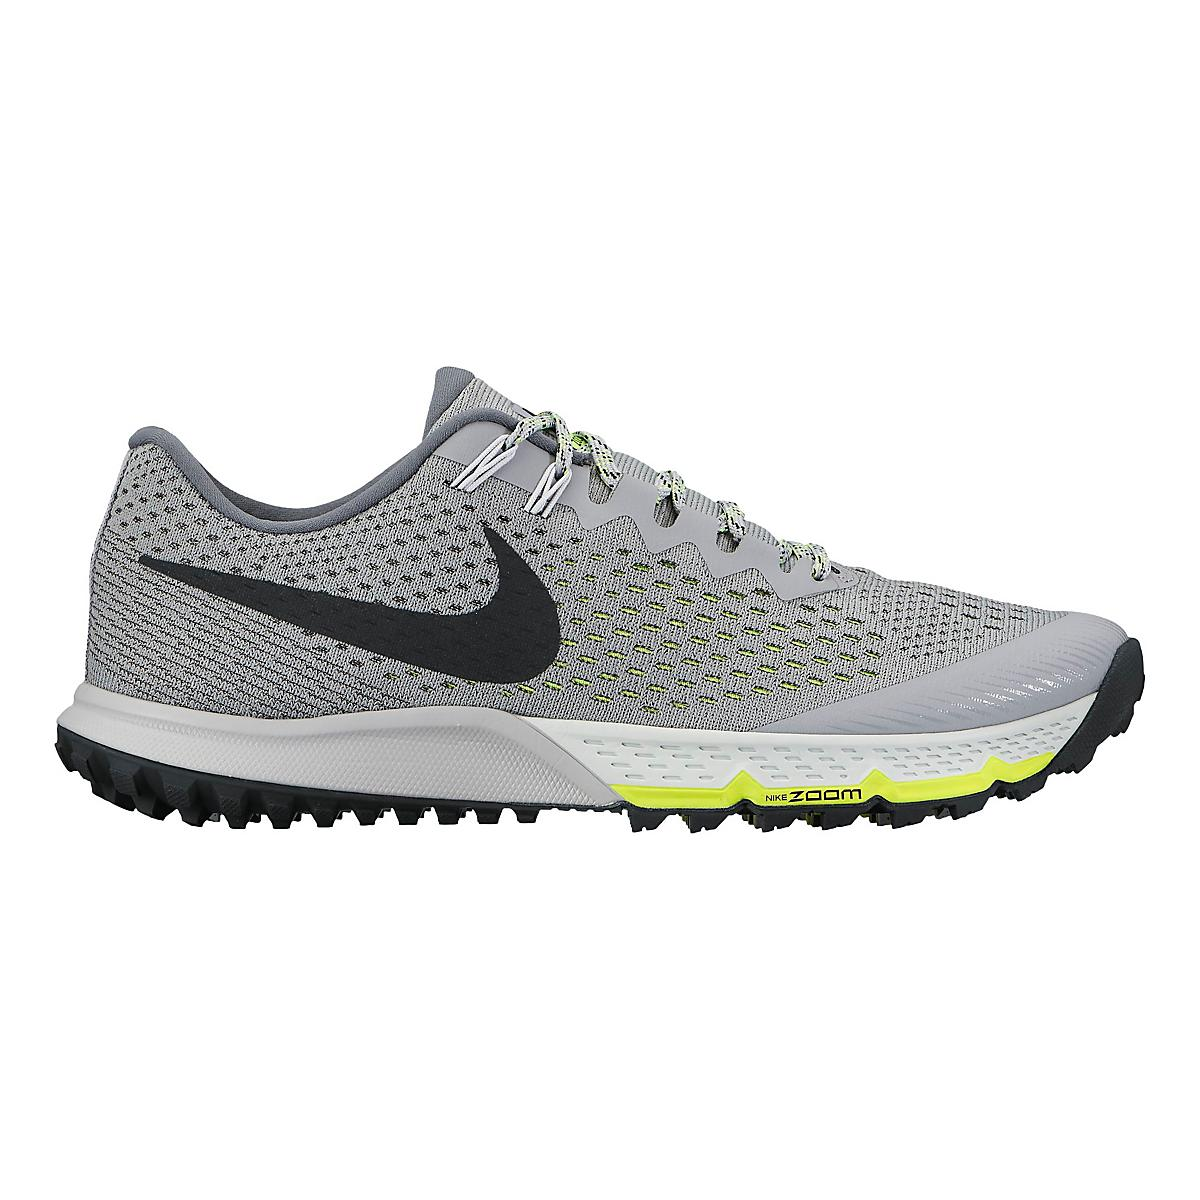 034af570a2d6 Nike Air Zoom Terra Kiger 4 Men s Trail Running Shoes